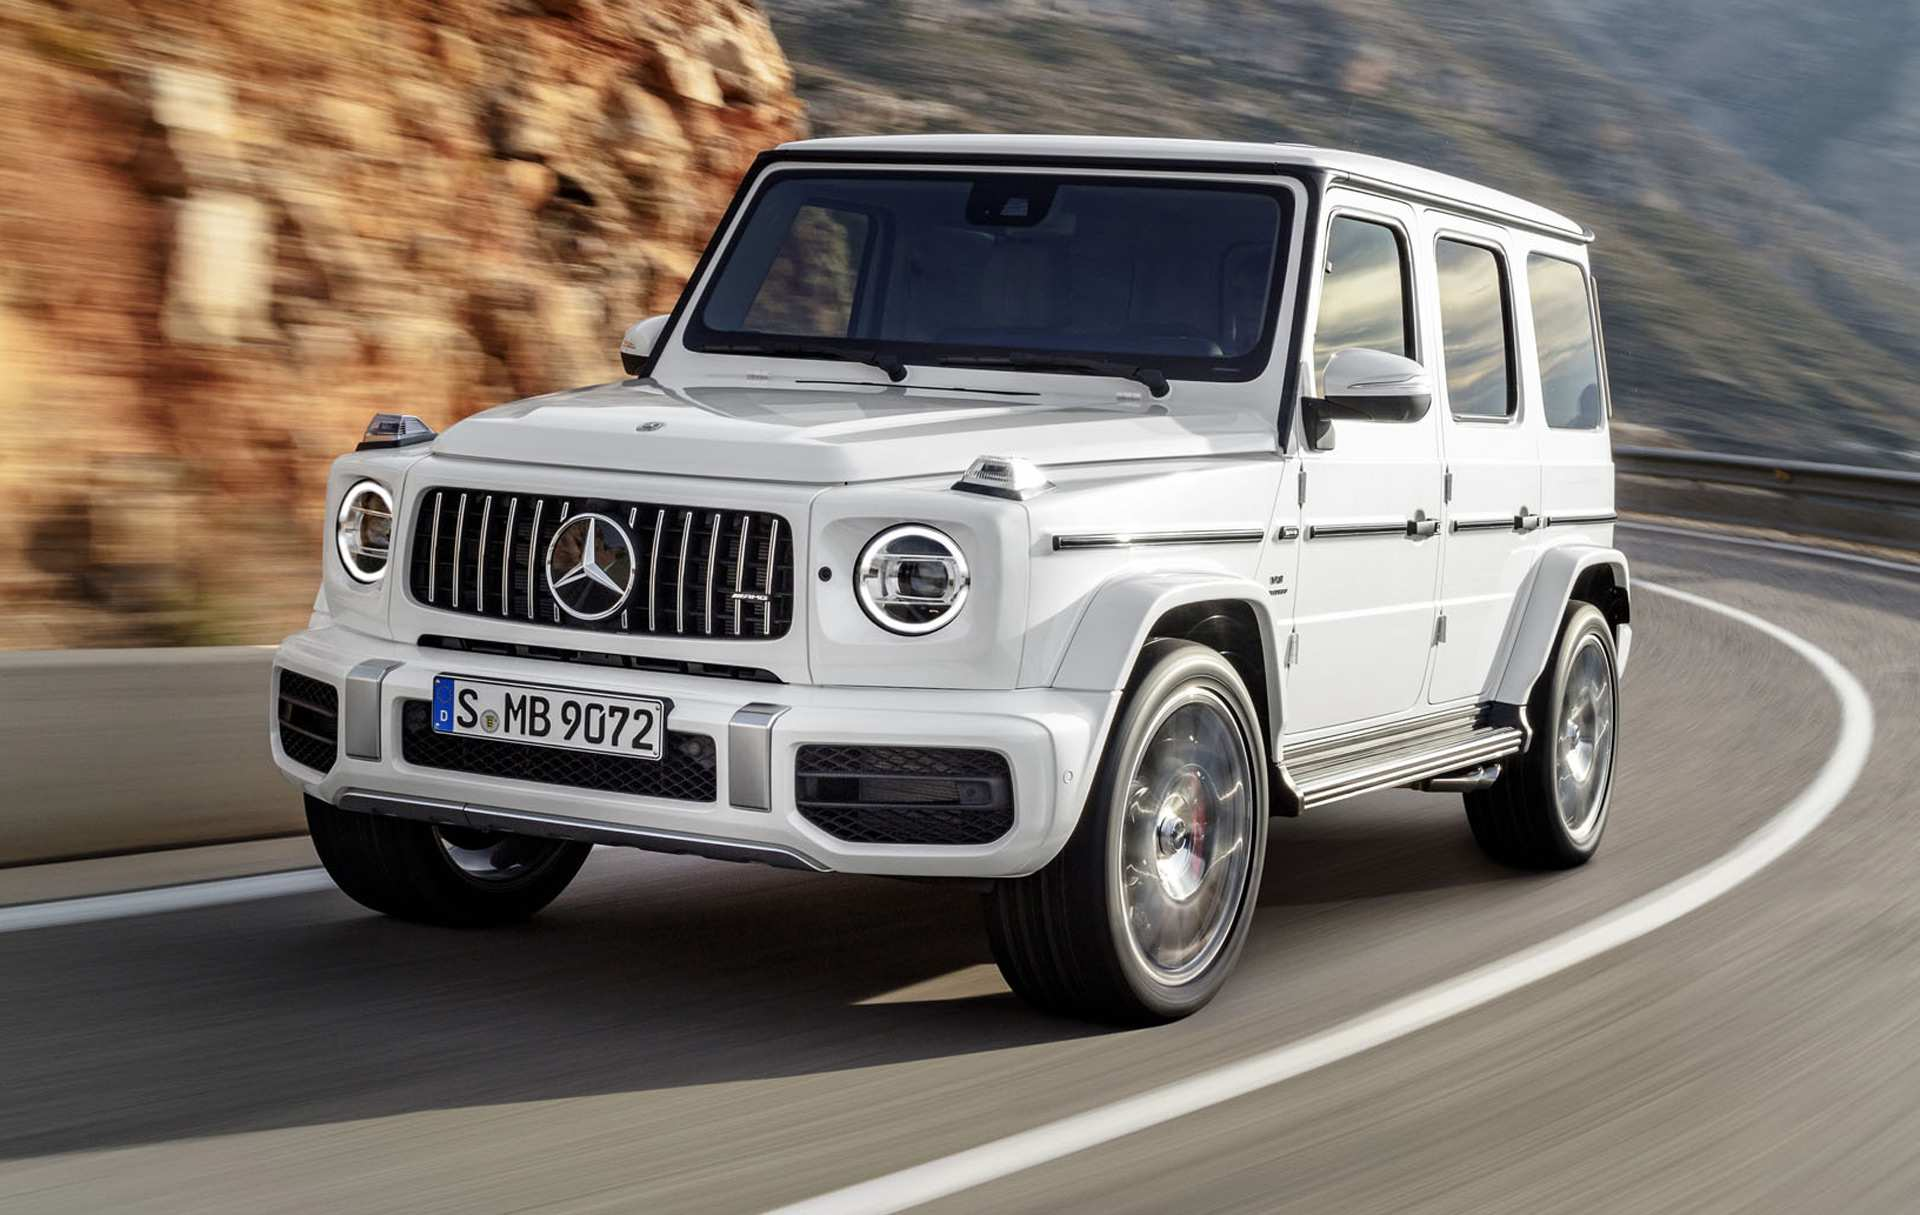 36 All New 2020 Mercedes G Wagon Picture for 2020 Mercedes G Wagon